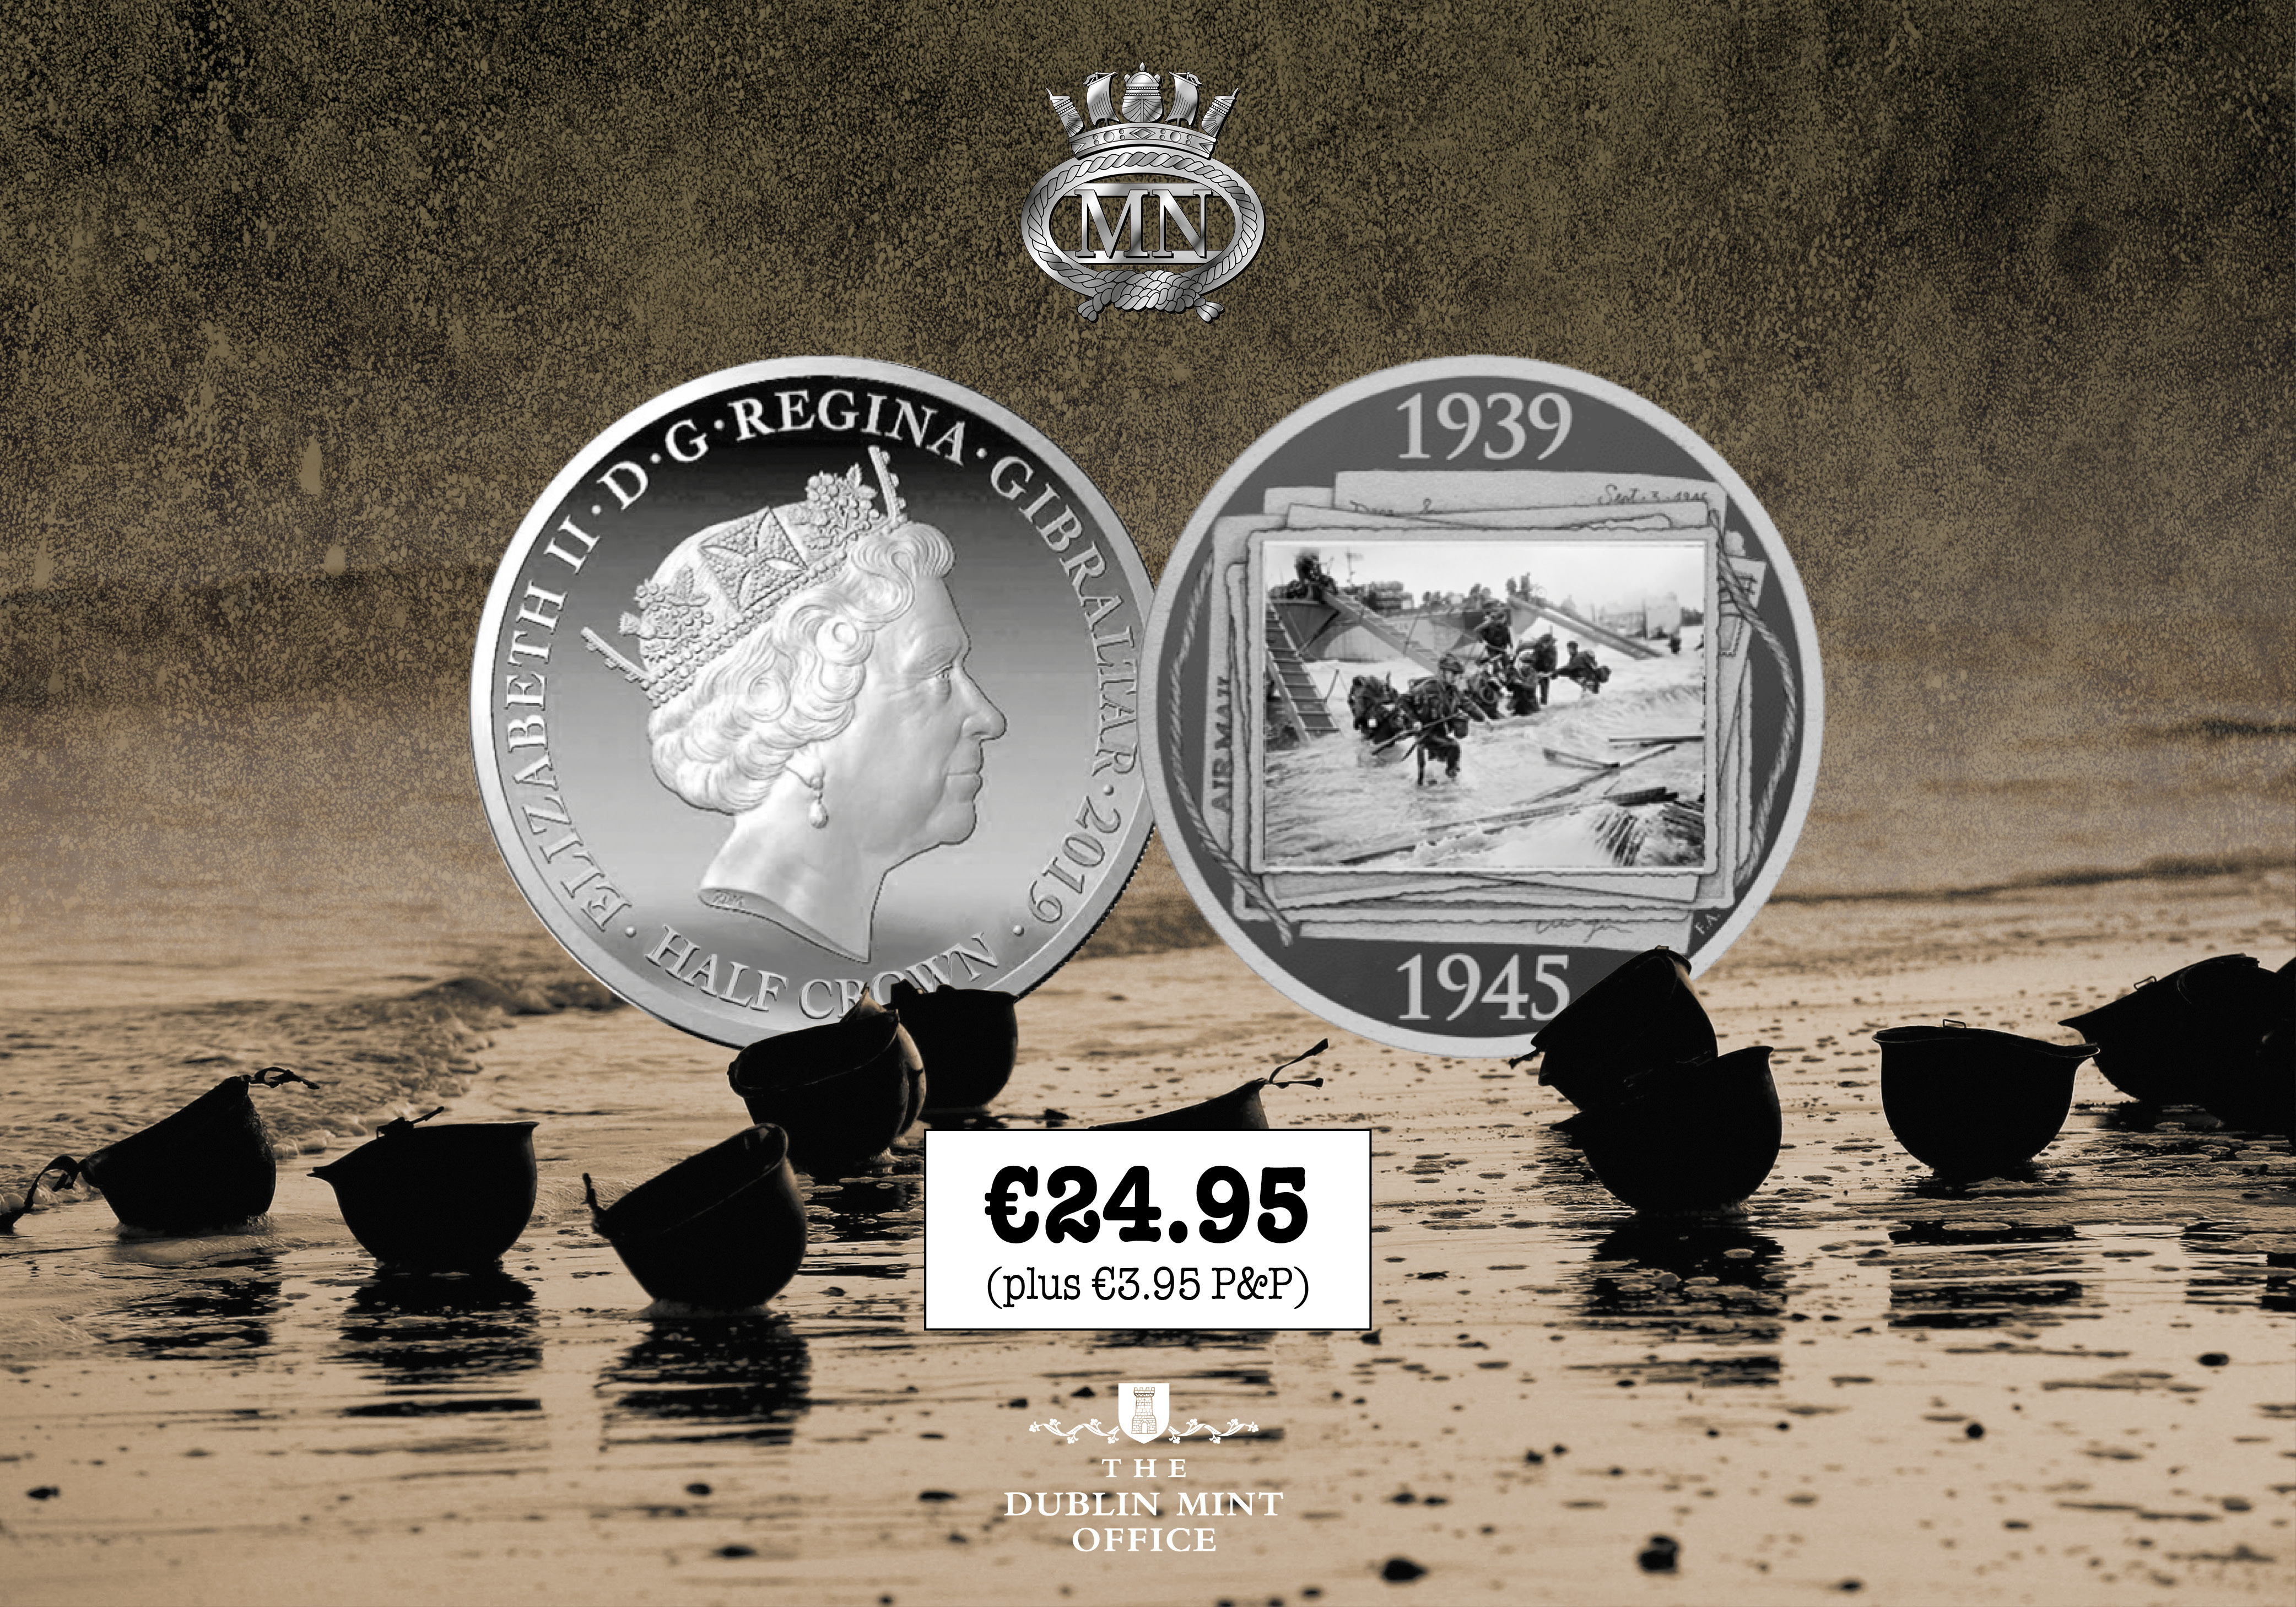 The Official D-Day 75th Anniversary coin - in Partnership with the Merchant Navy Association